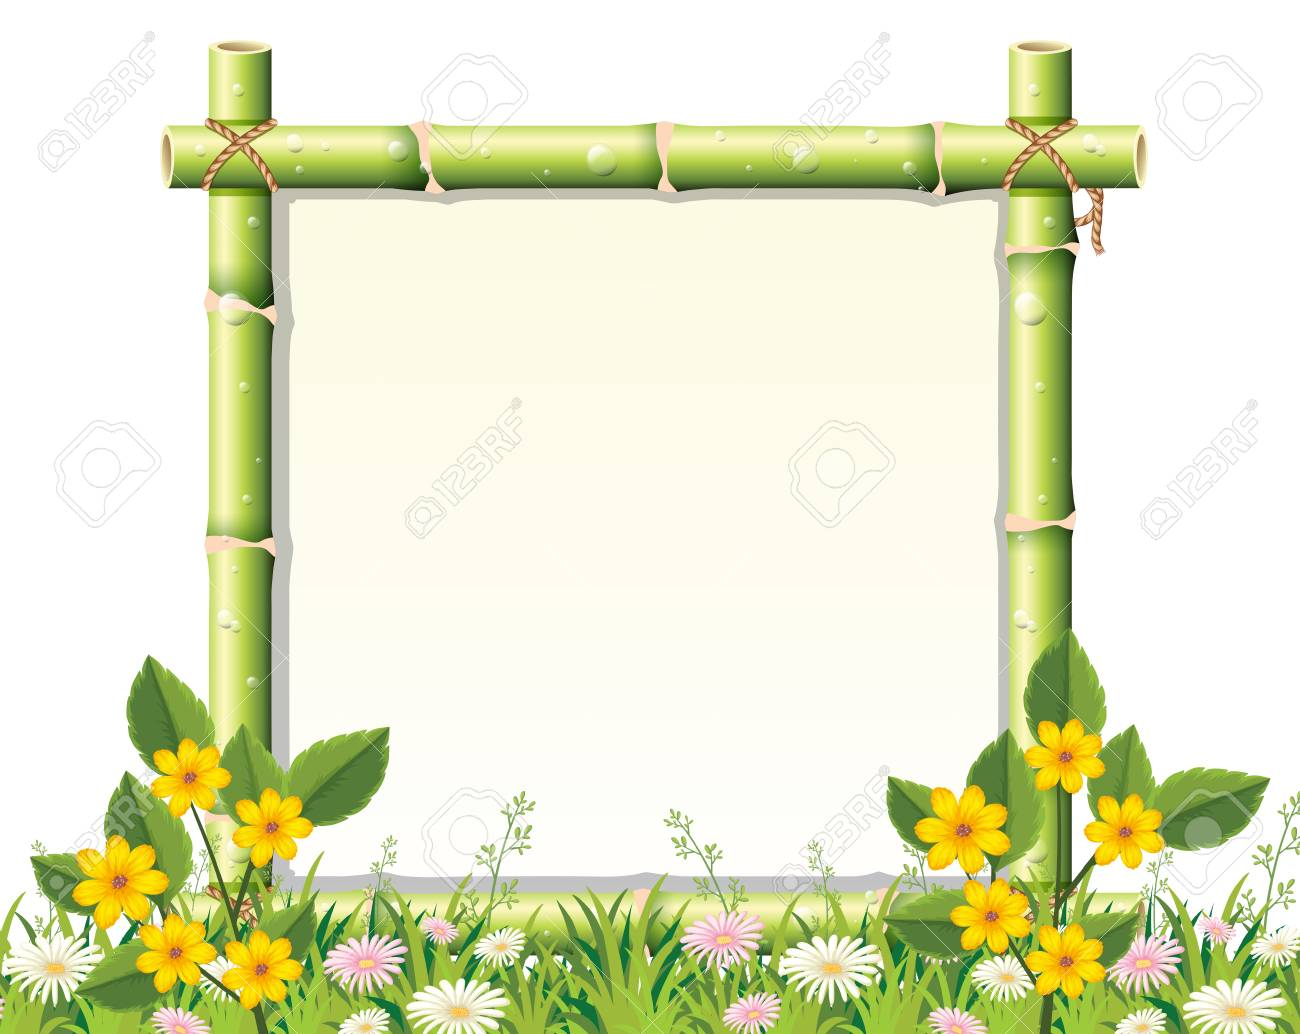 a beautiful nature frame illustration royalty free cliparts vectors and stock illustration image 111830378 a beautiful nature frame illustration